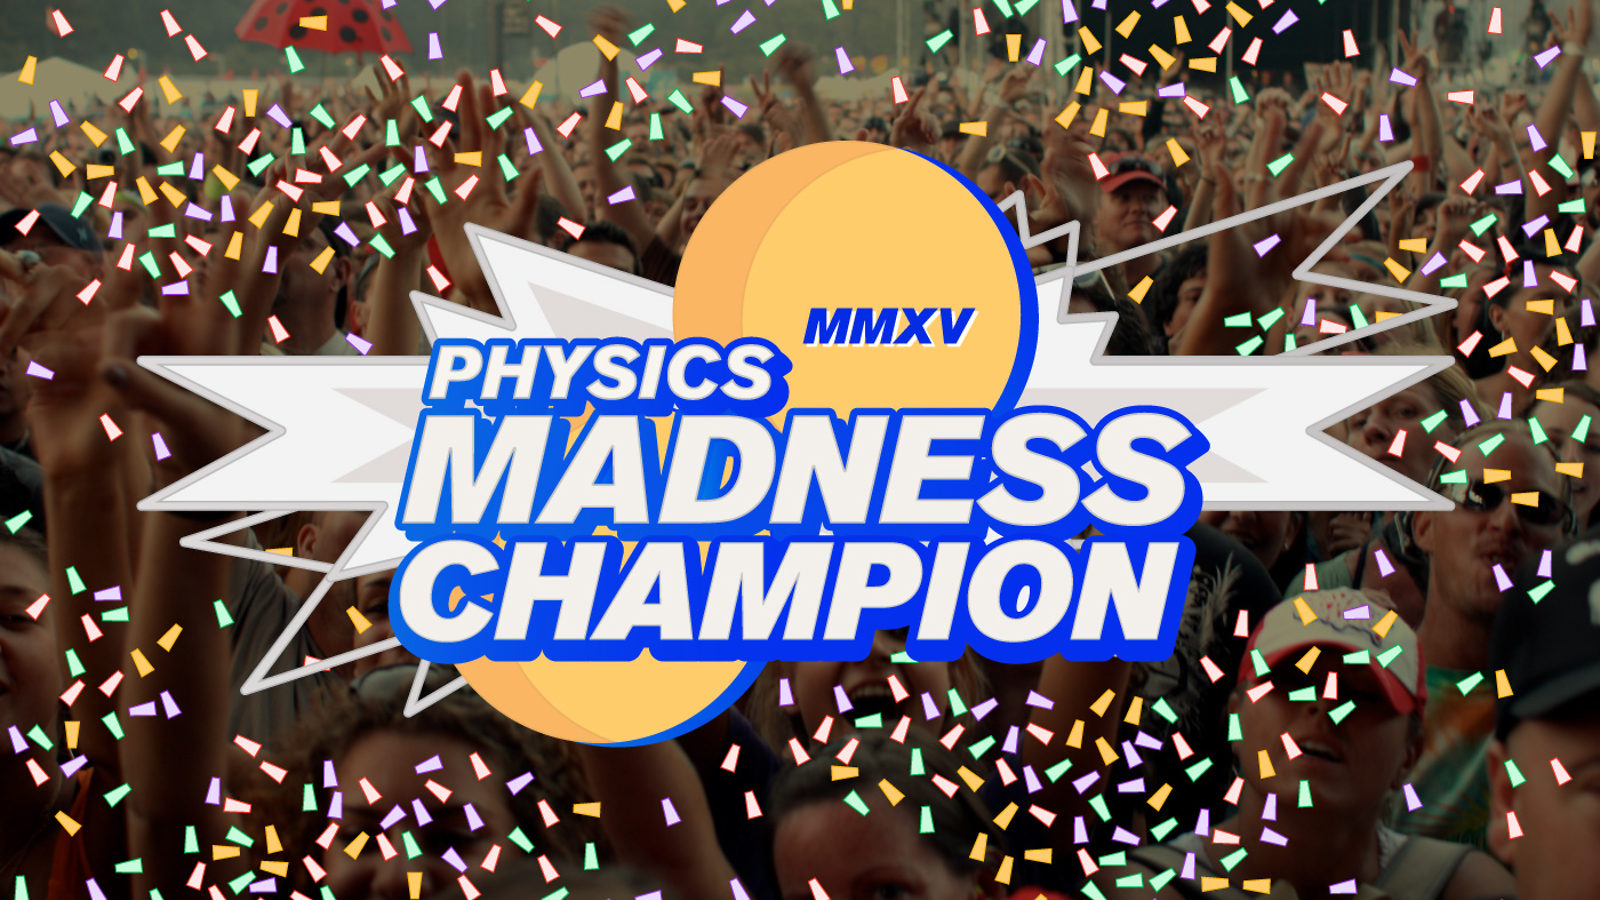 Graphic of Physics Madness Winner